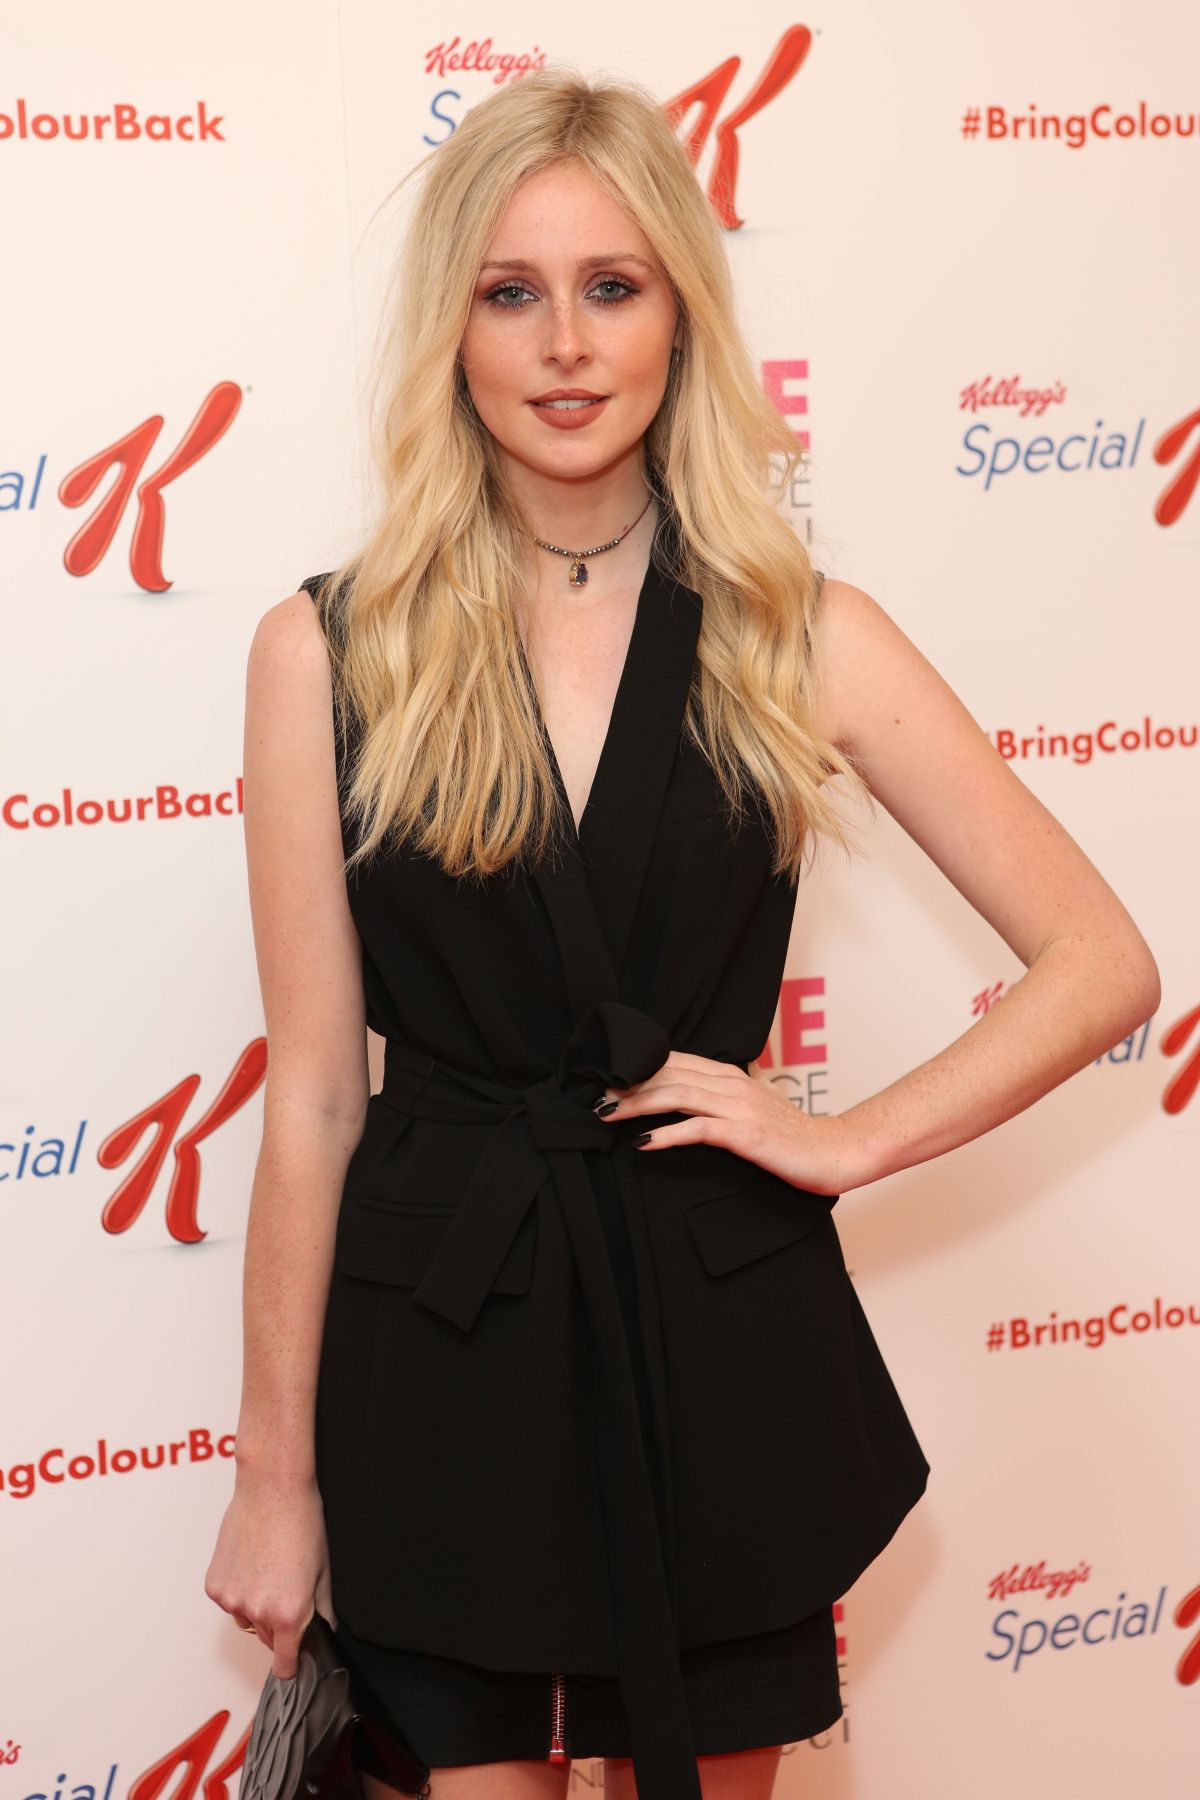 DIANA VICKERS at The Special K Bring Colour Back Launch in London 10/07/2015